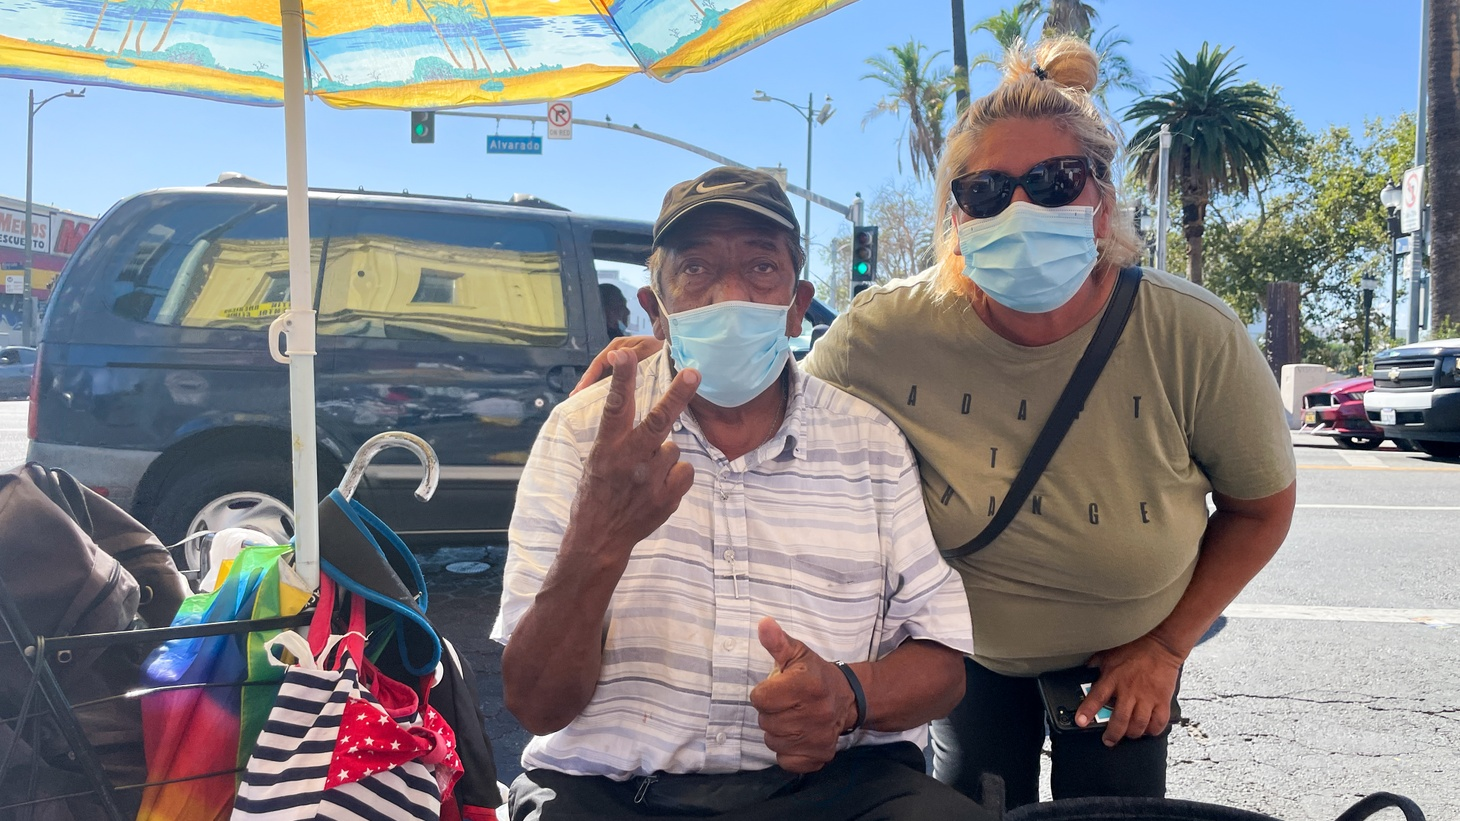 Elizabeth Medina (right) with her friend and street vending partner Victor Renteria pose for a photo as they sell electronics and other knick-knacks near MacArthur Park.